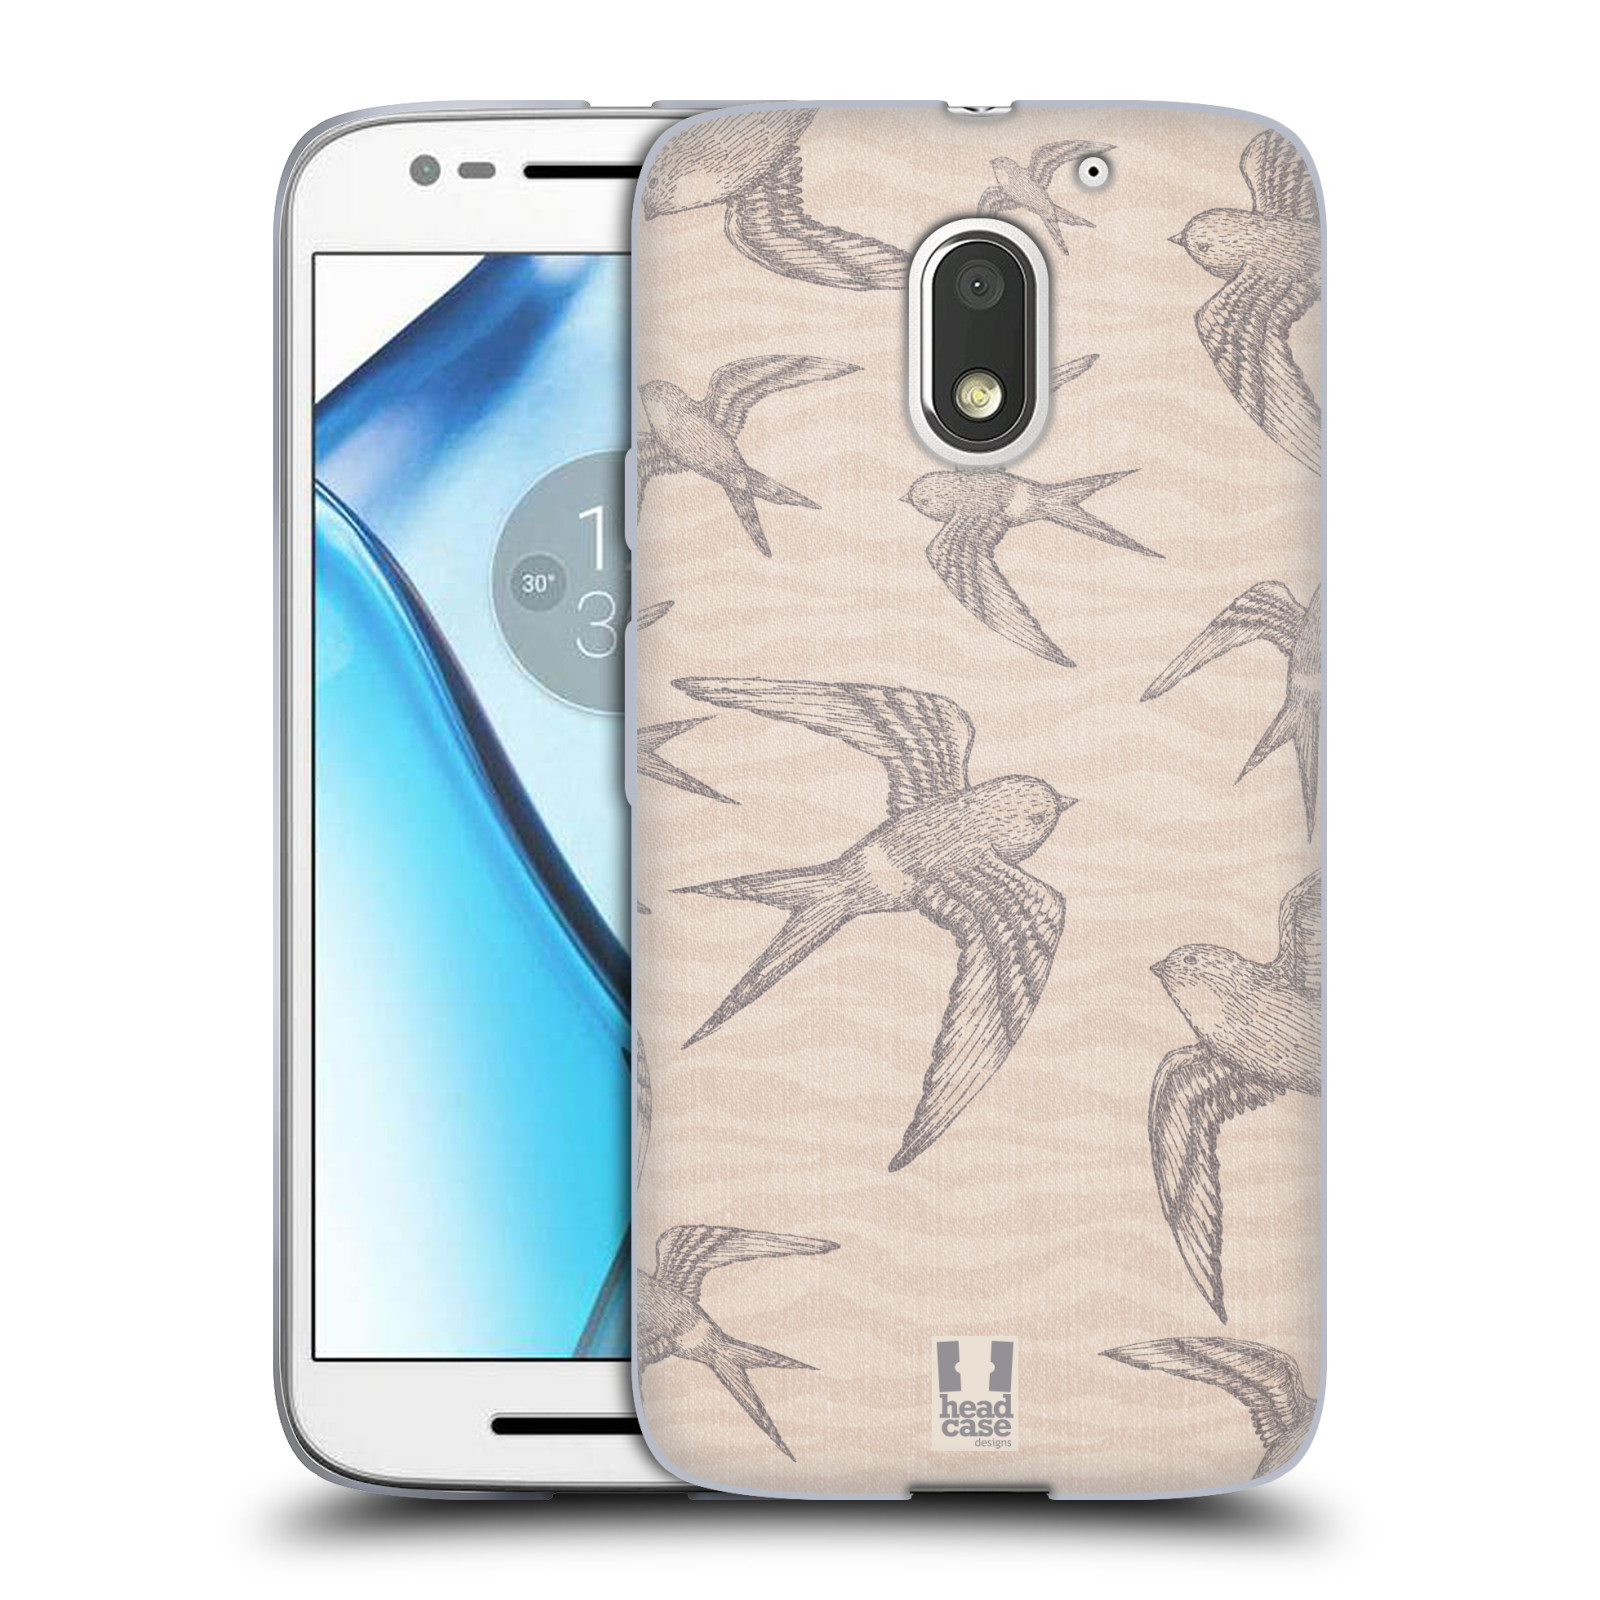 HEAD-CASE-DESIGNS-BIRD-PRINTS-SOFT-GEL-CASE-FOR-MOTOROLA-MOTO-E3